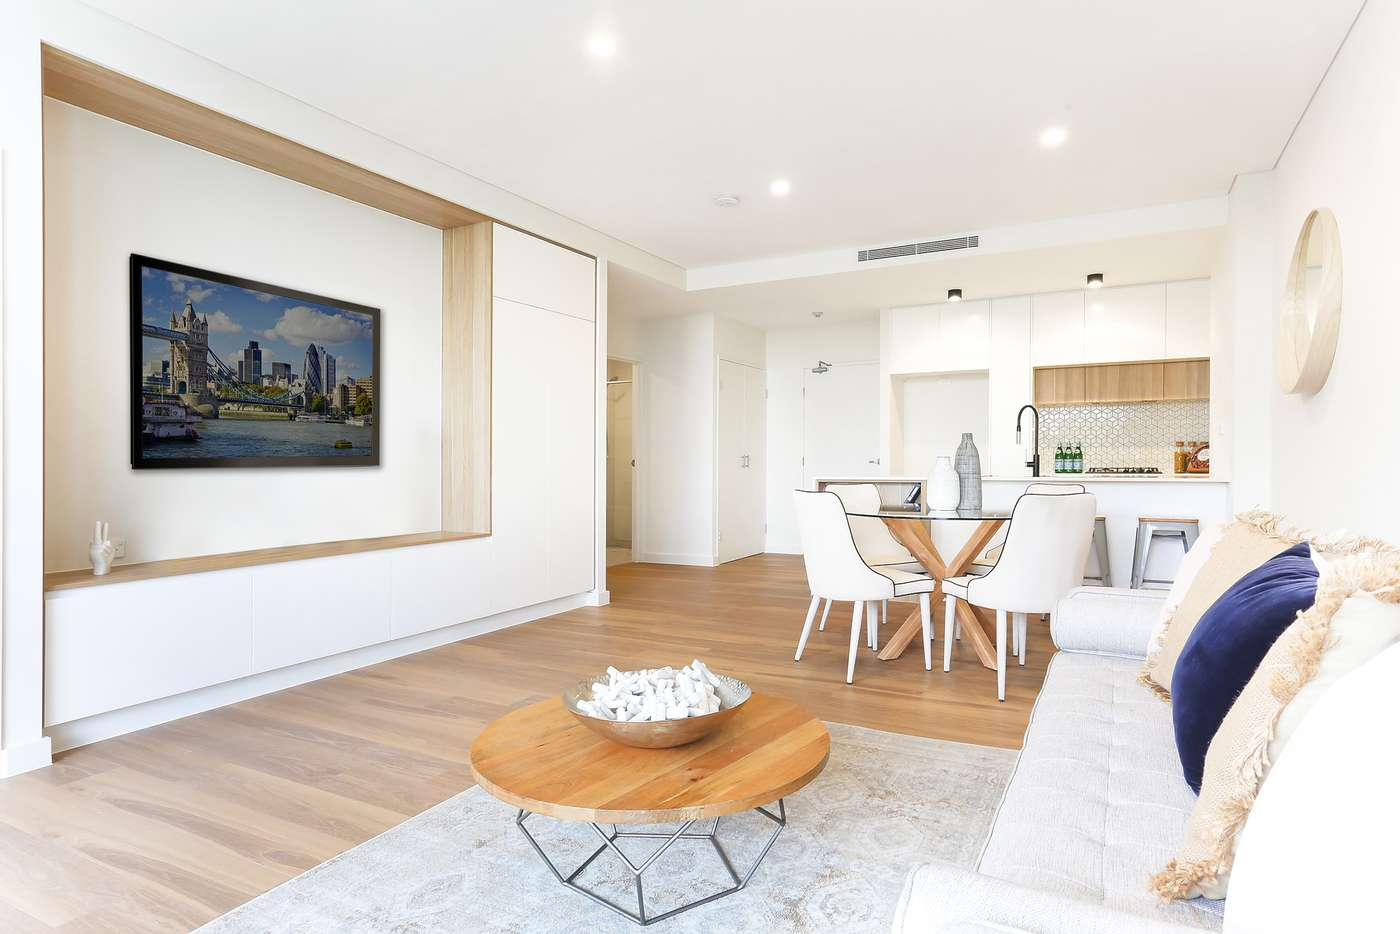 Main view of Homely apartment listing, 305/2 Murrell Street, Ashfield NSW 2131